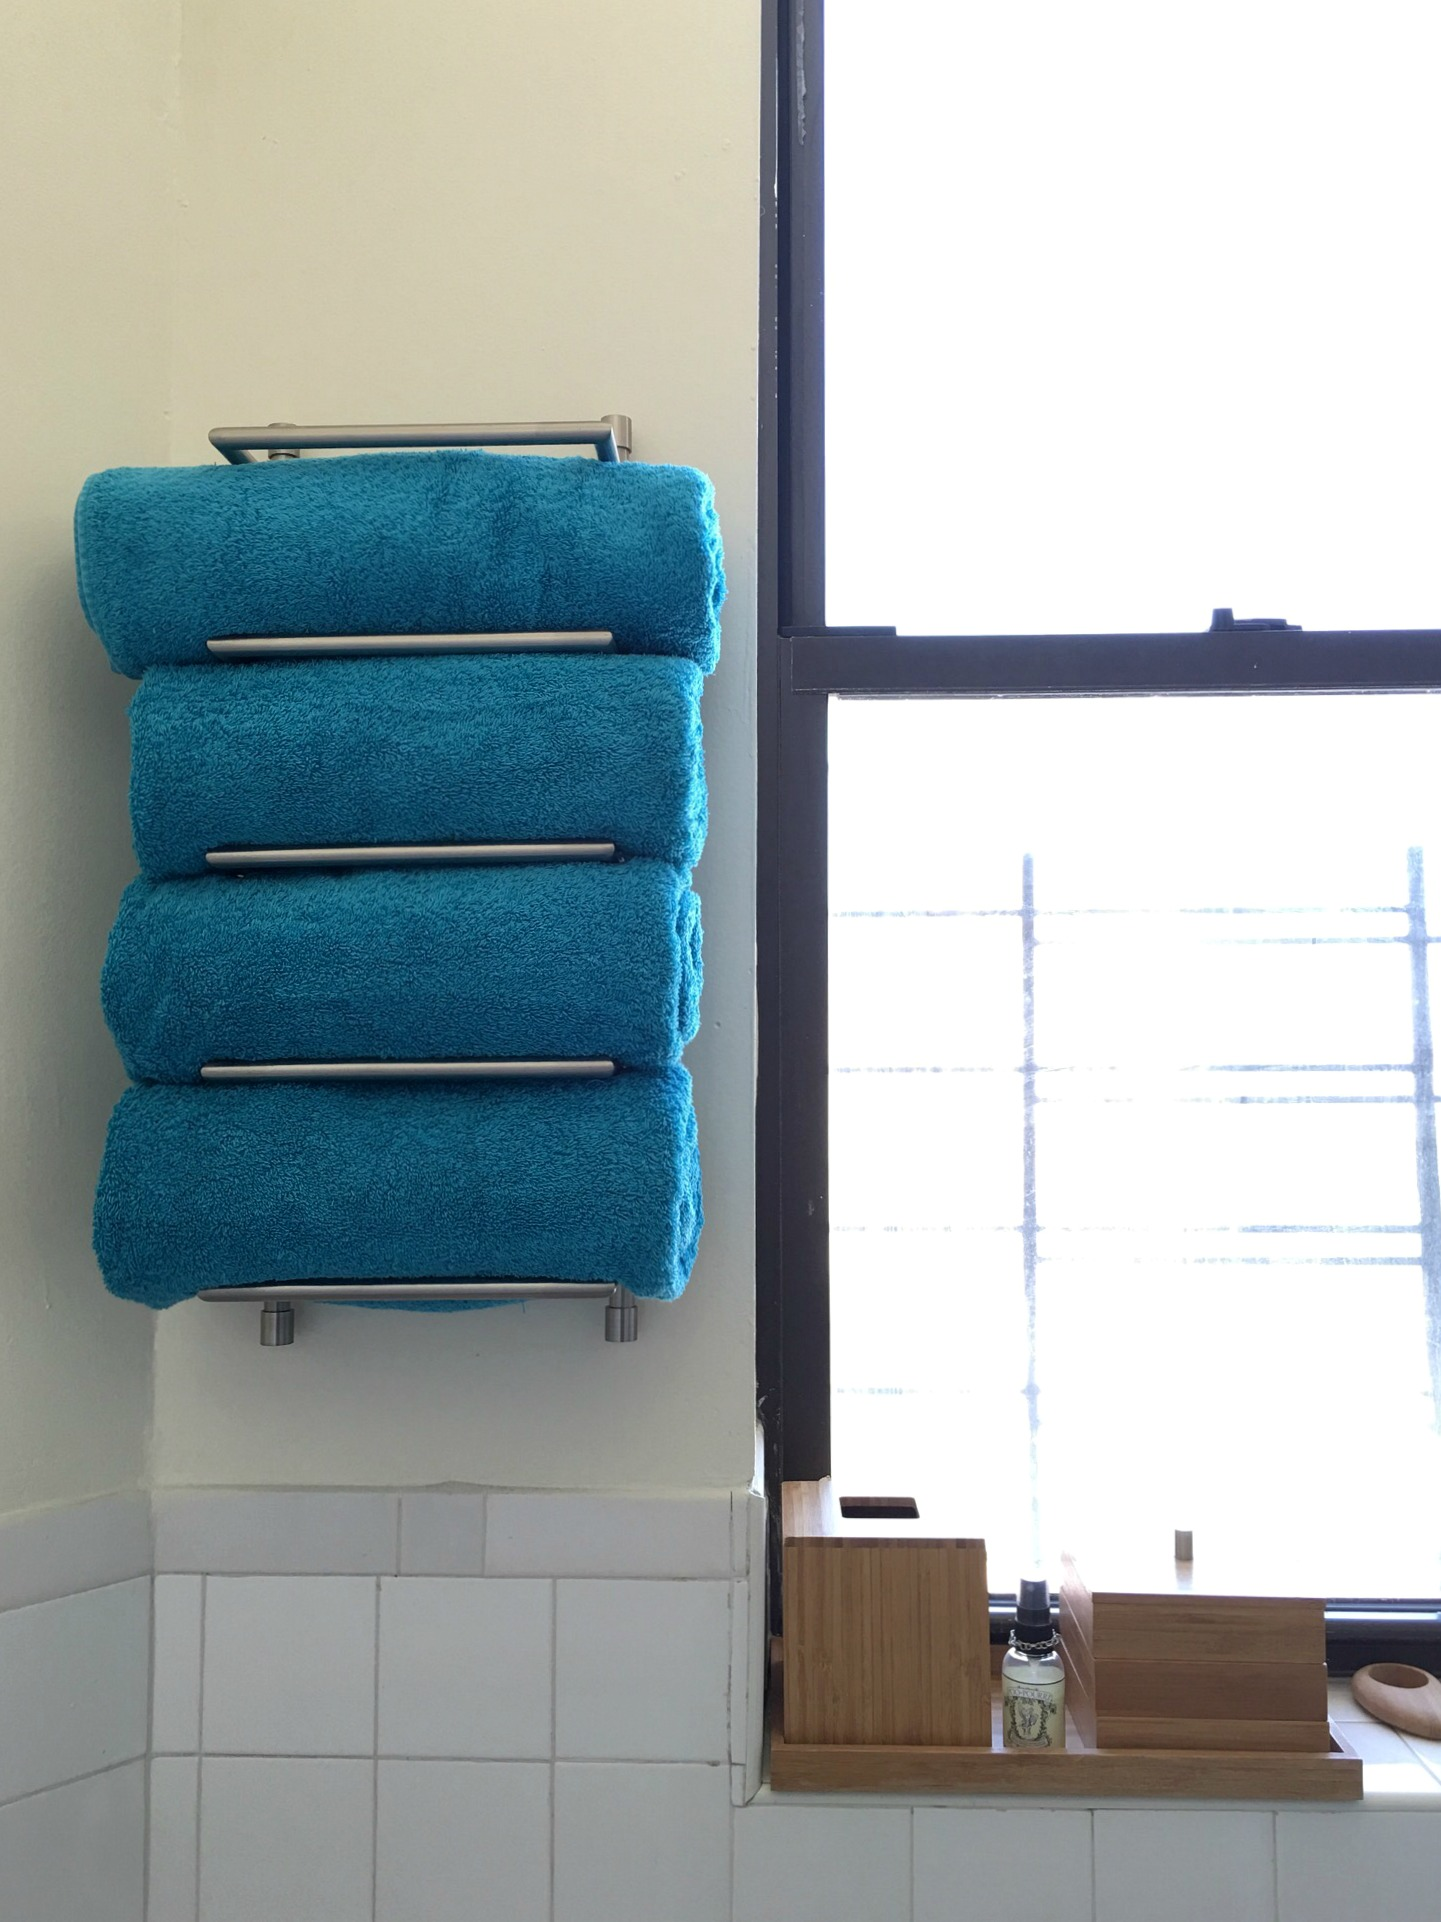 small bathroom hack - towel rack